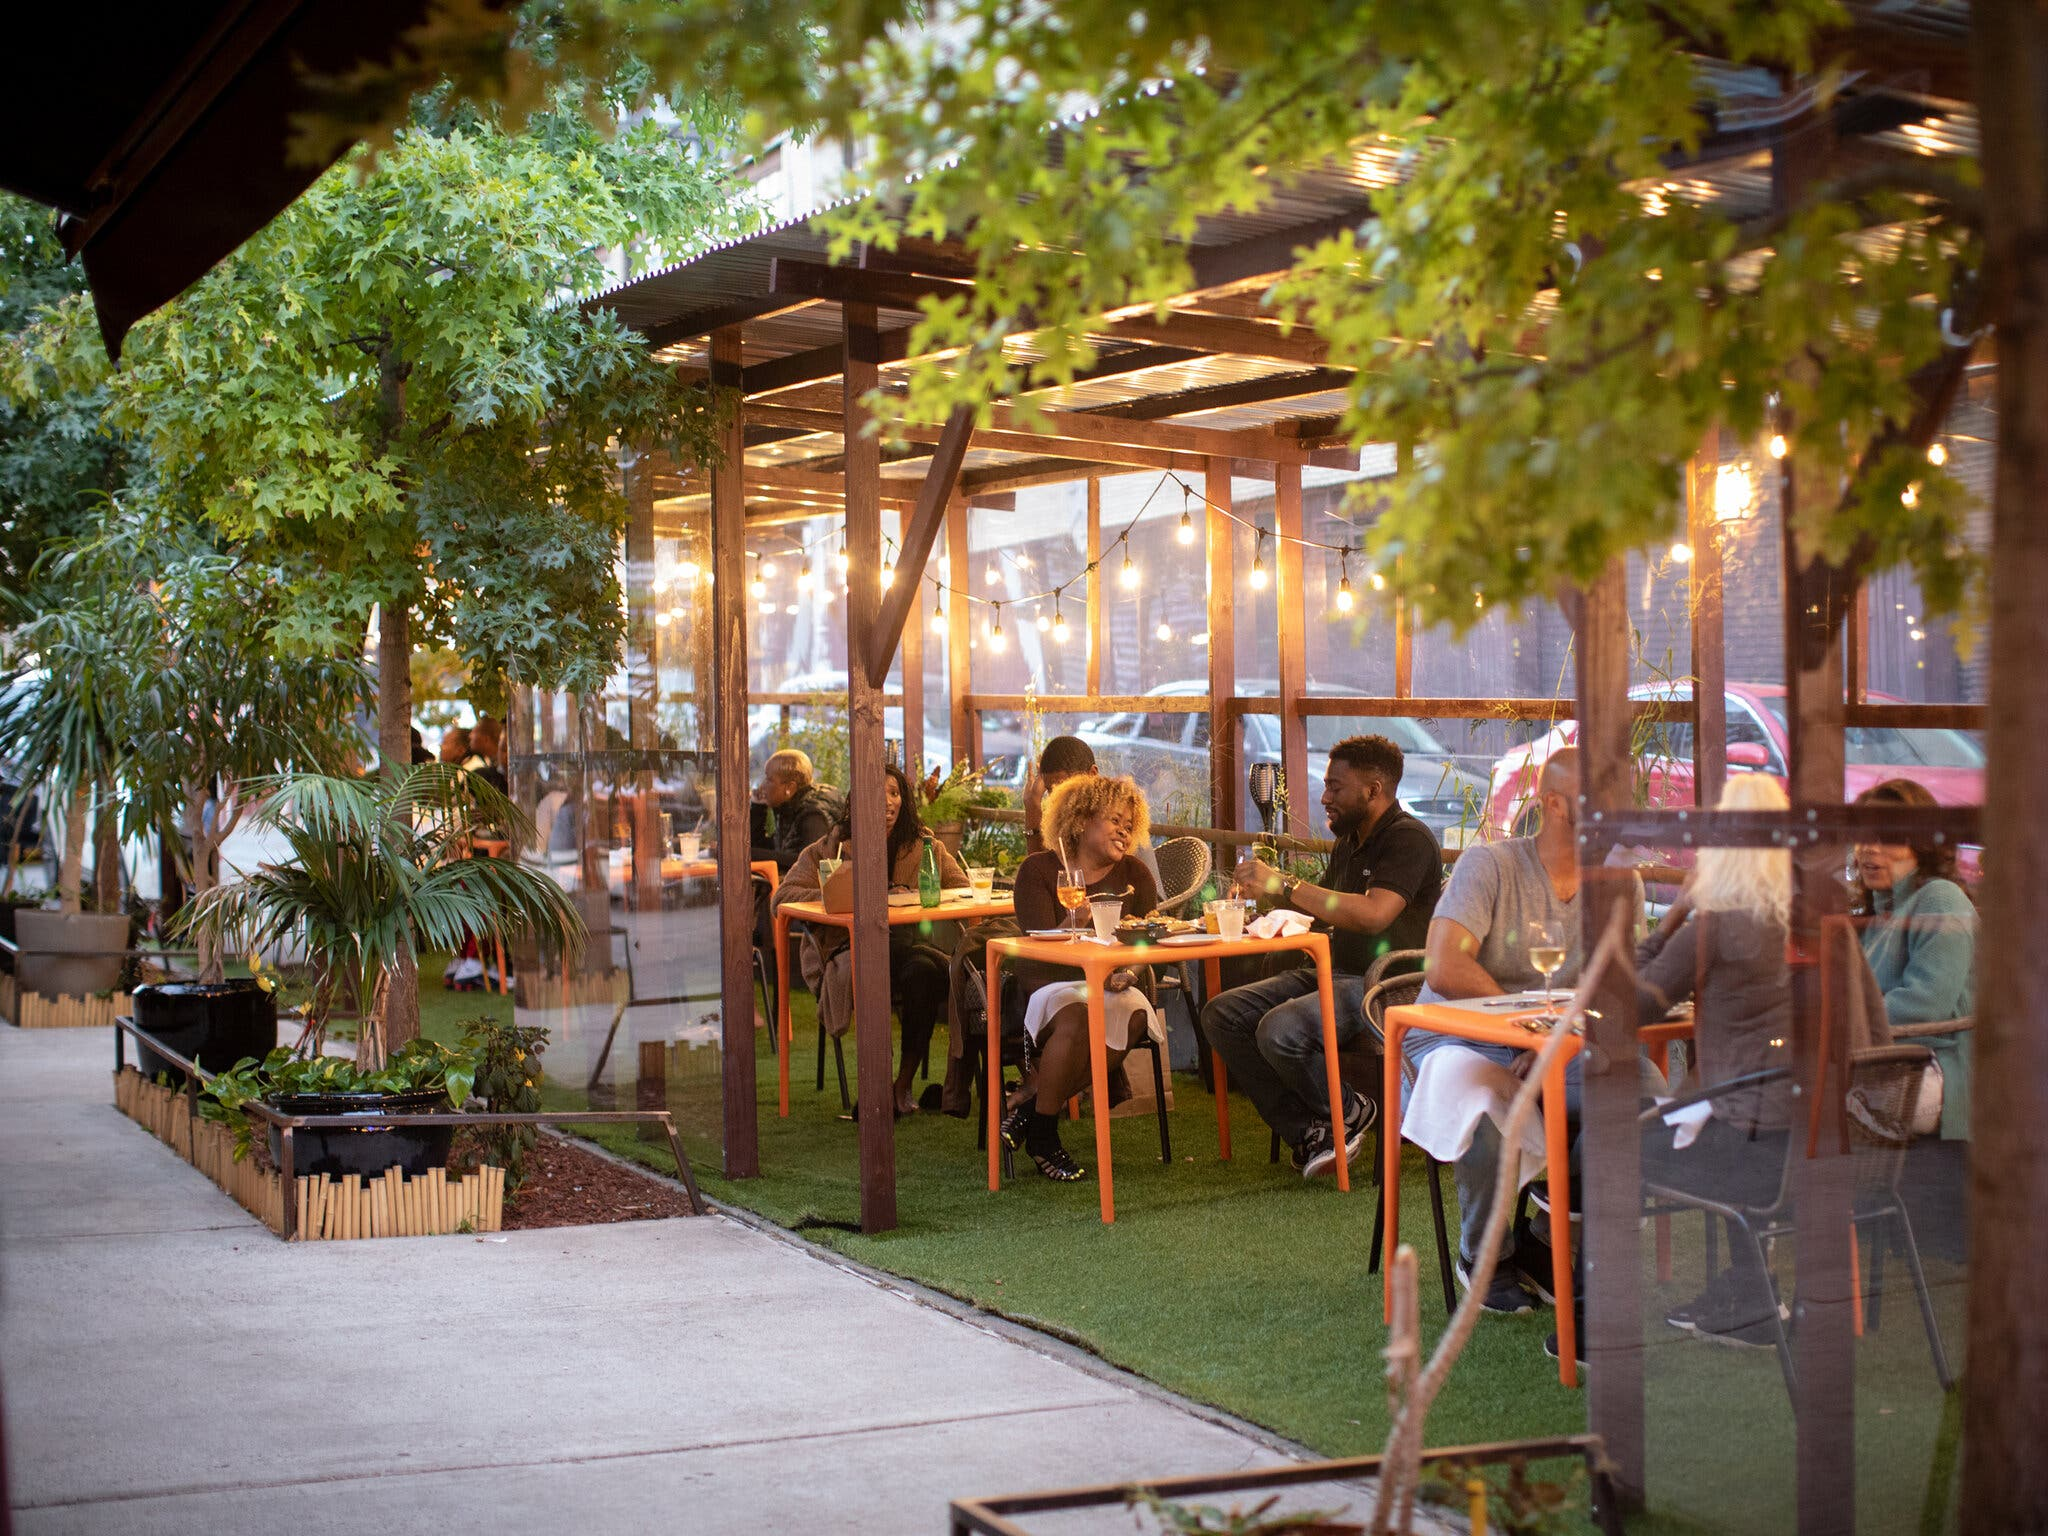 the outdoor dining structure at the restaurant Kokomo